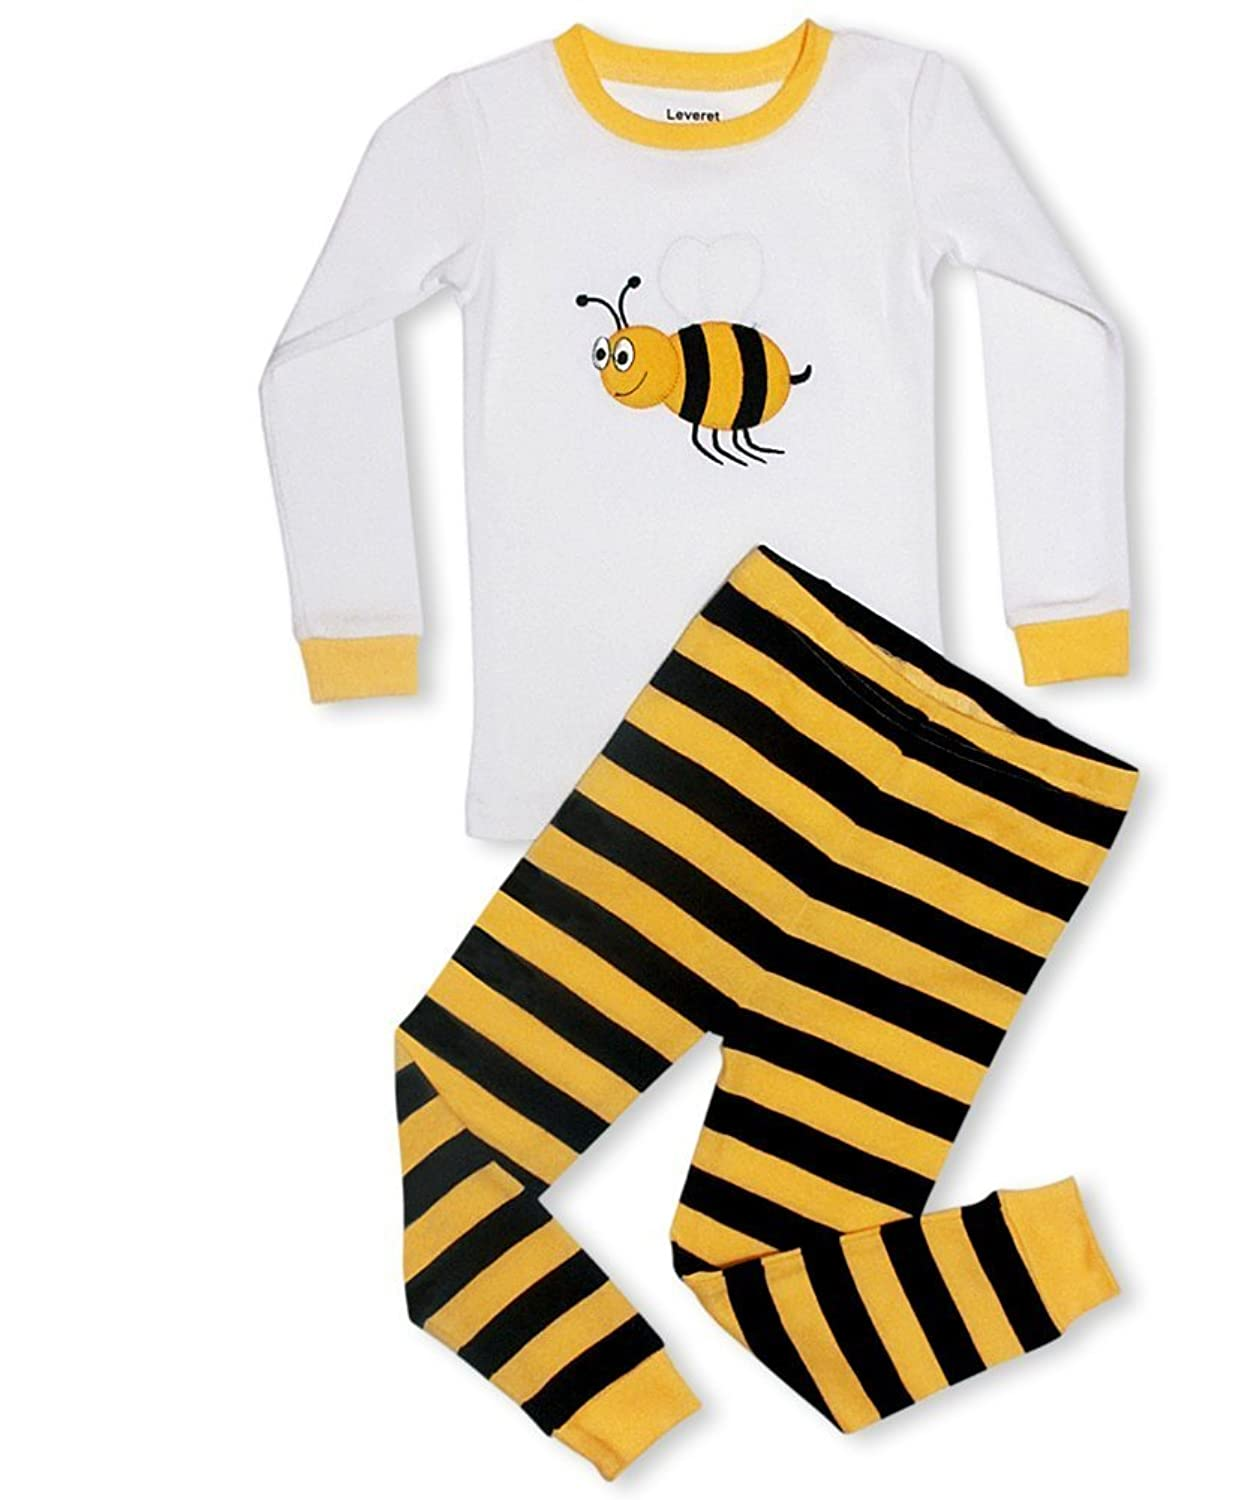 Amazon Leveret Boys Girls Moon Stars Bumble Bee 2 Piece Pajama Set Top Pants 100 Cotton Toddler 14 Years Clothing